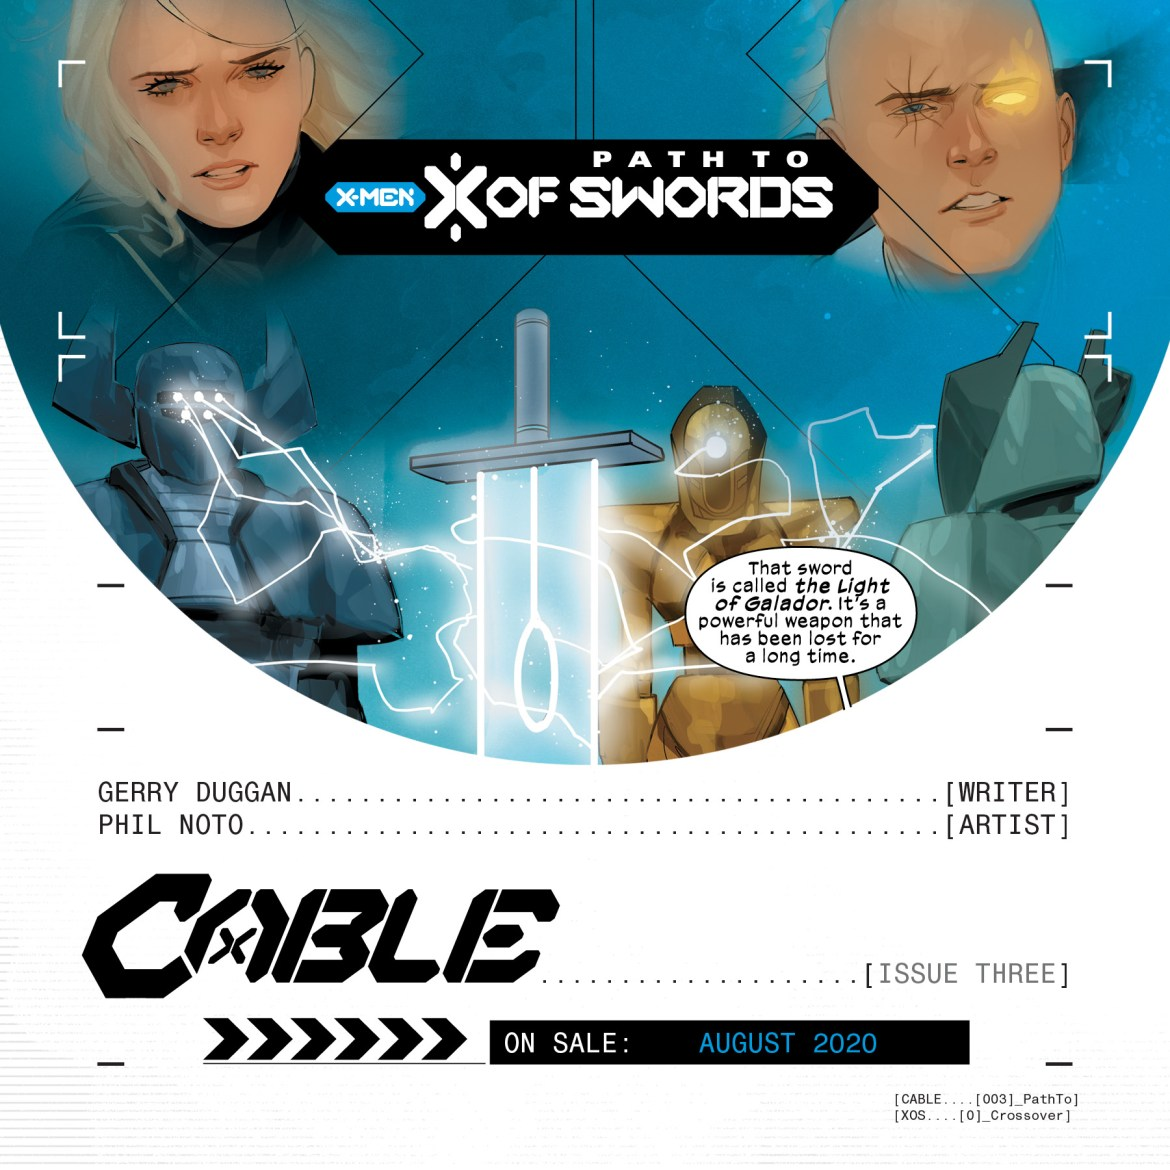 XOSPromo_Cable03 The path to X OF SWORDS goes through CABLE #3